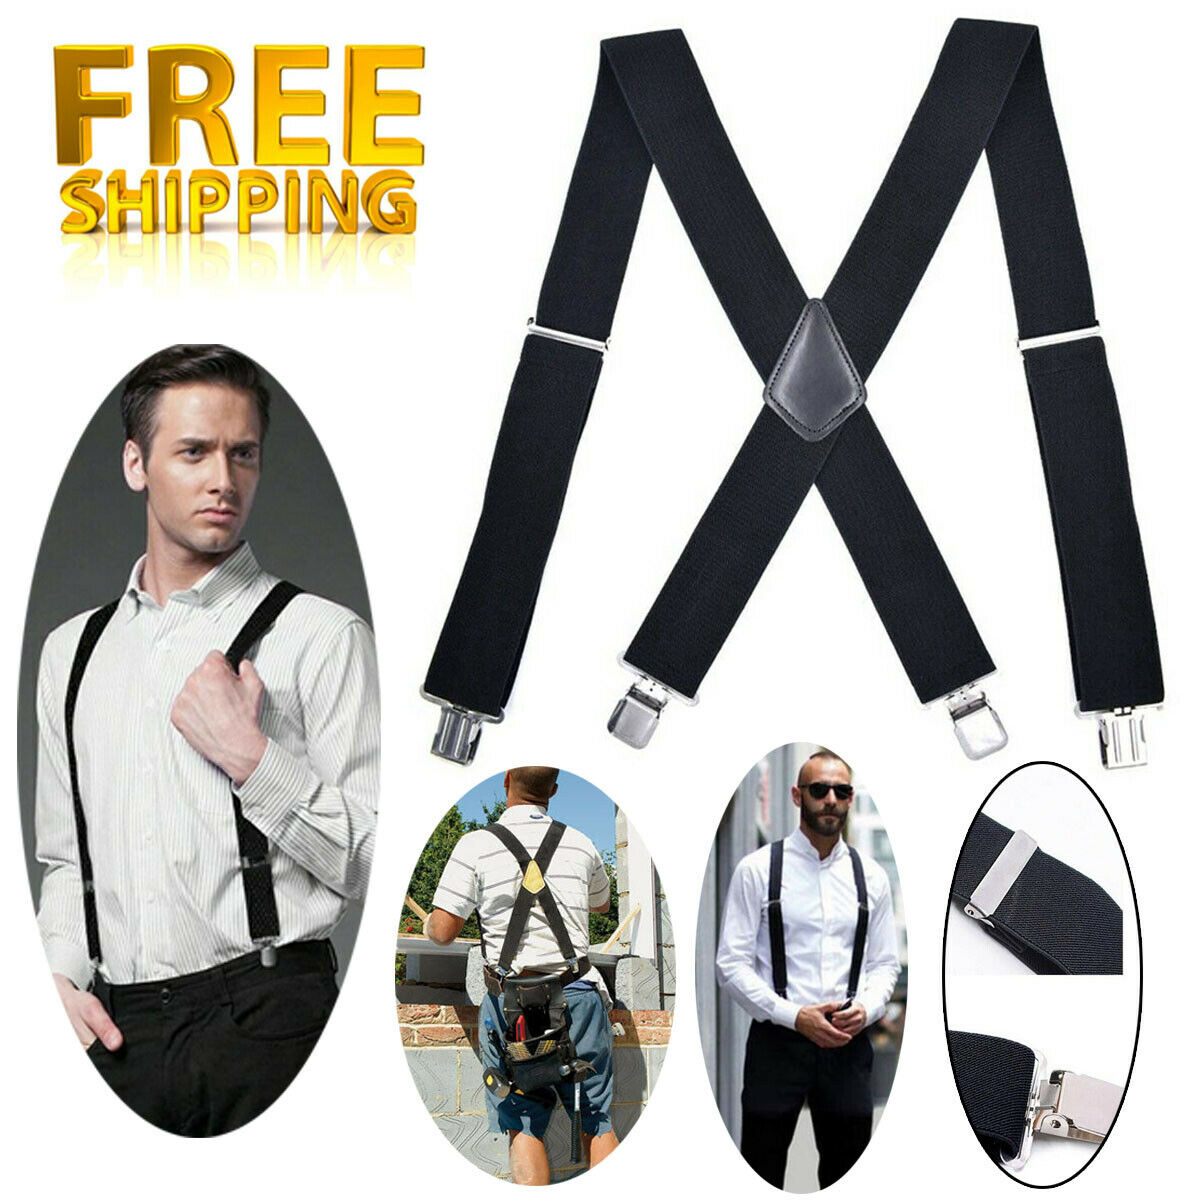 120cm trouser braces Padded Adjustable Work Braces With Heavy Duty Trouser Clips